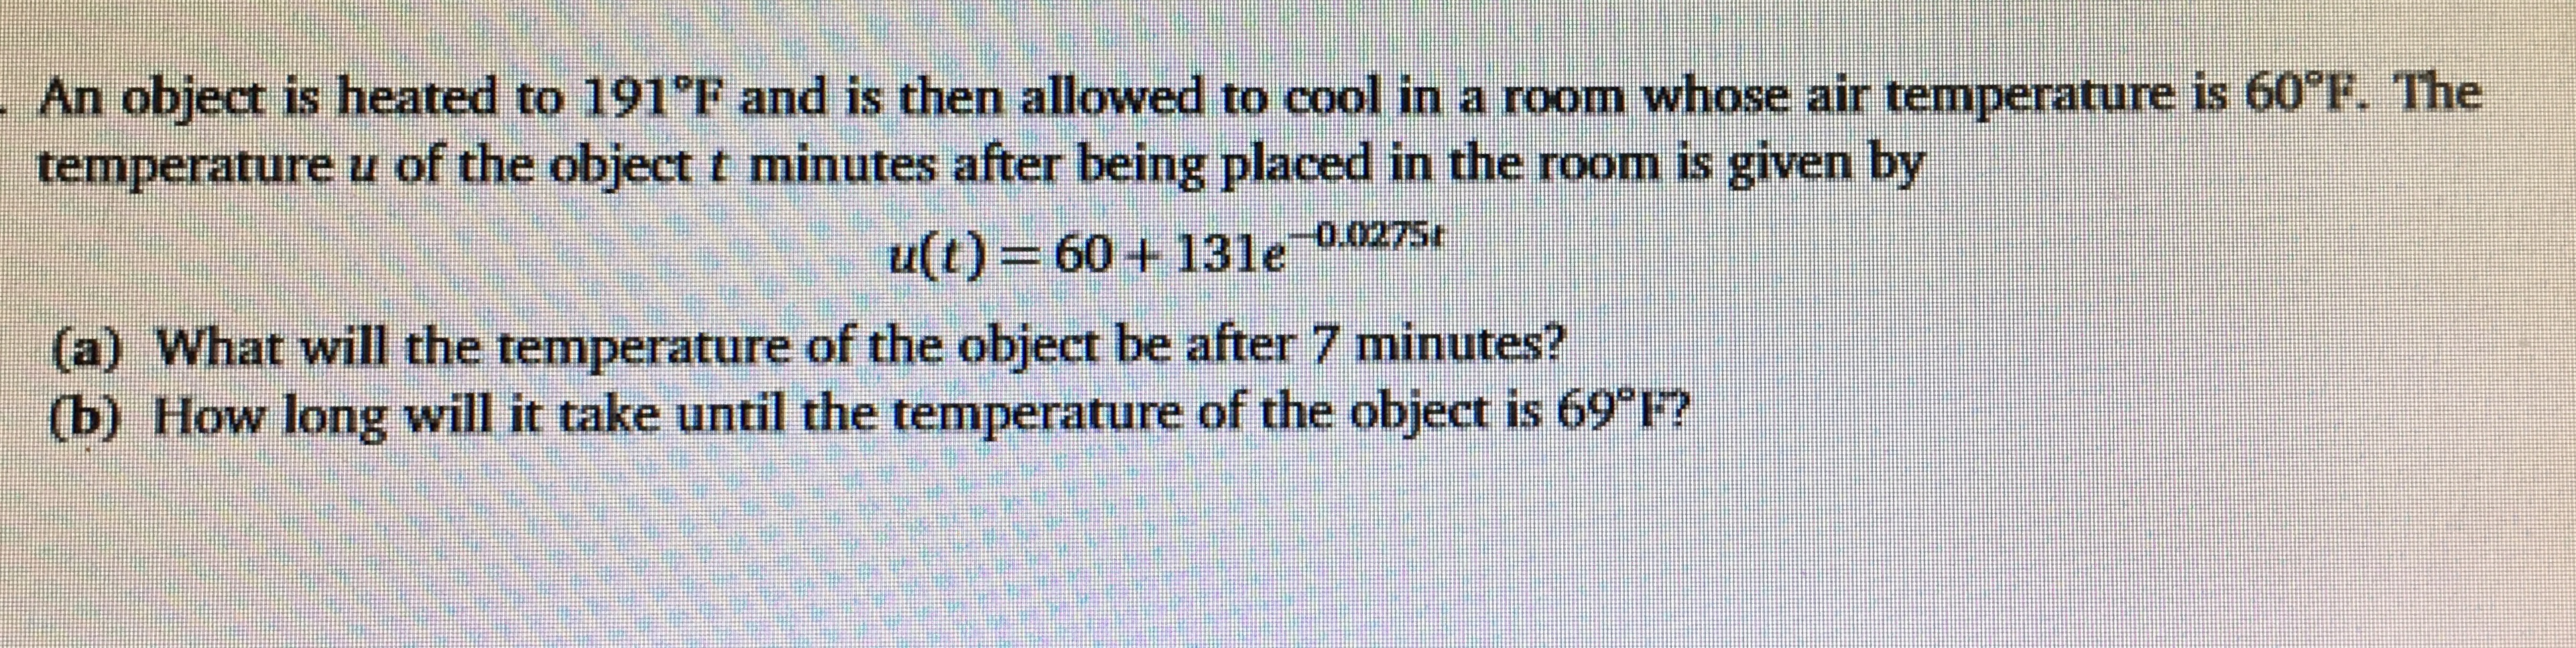 """An object is heated to 191""""F and is then allowed to cool in a room whose air temperature is 60 F. The temperature u of the object t minutes after being placed in the room is given by u(t) = 60+131e 0.0275e (a) What will the temperature of the object be after 7 mninutes? (b) How long will it take until the temperature of the object is 69 F?"""